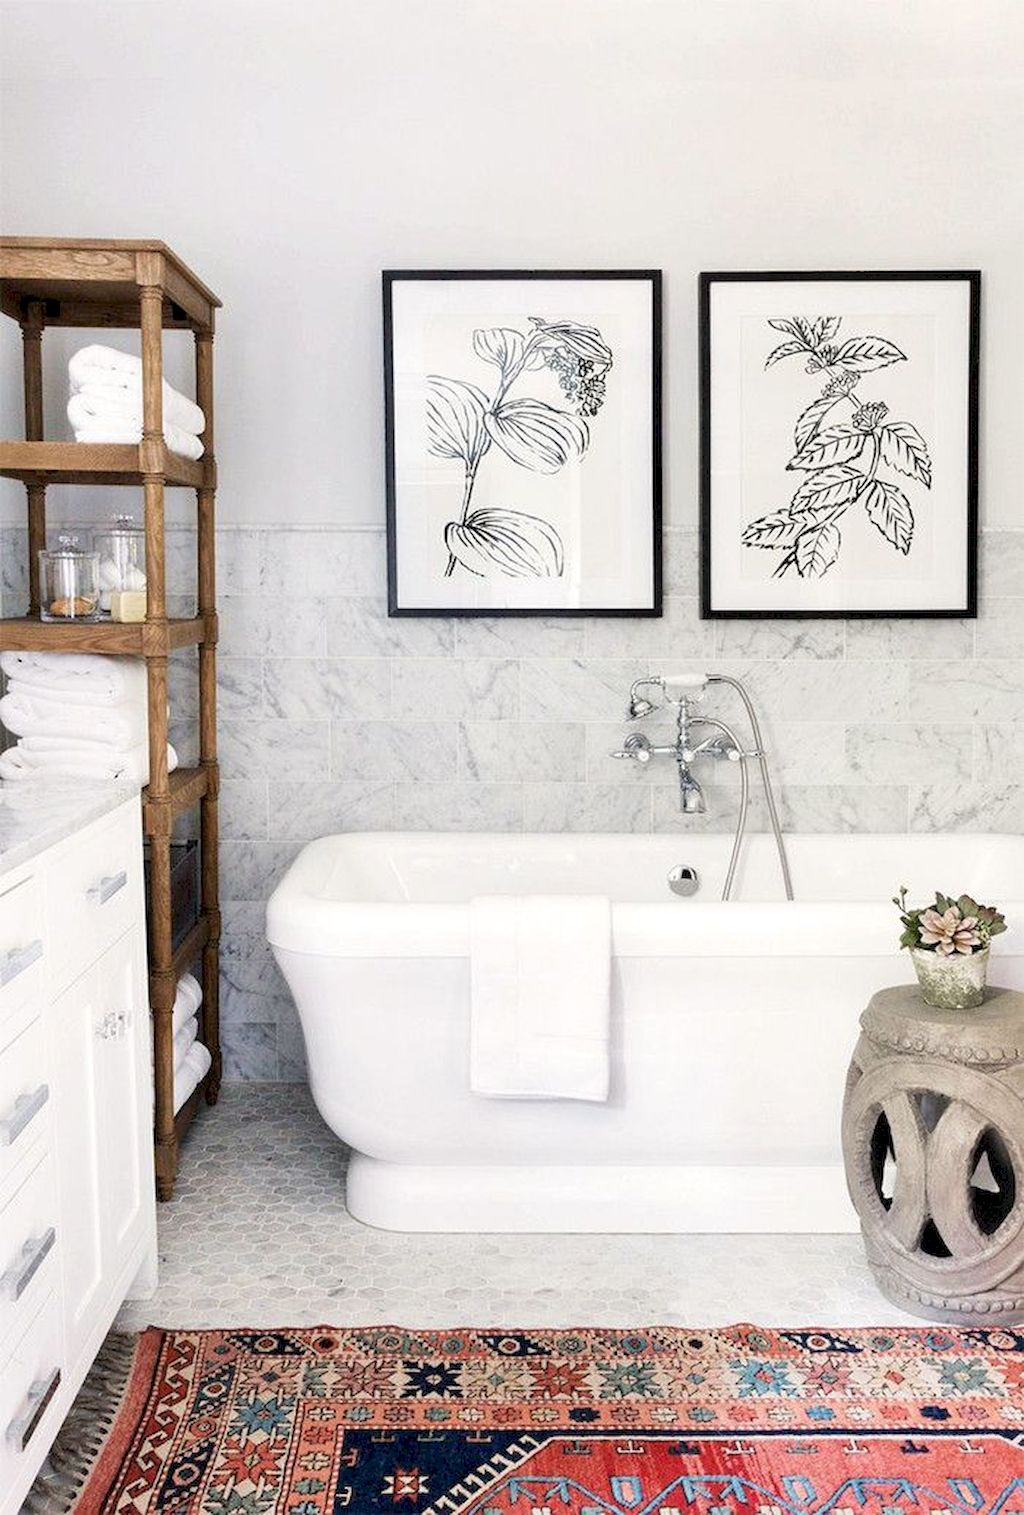 https://elonahome.com/wp-content/uploads/2018/09/Easy-Bathroom-Makeover-Inspirations-with-Cheap-Decoration-and-Accessories-Part-15.jpg